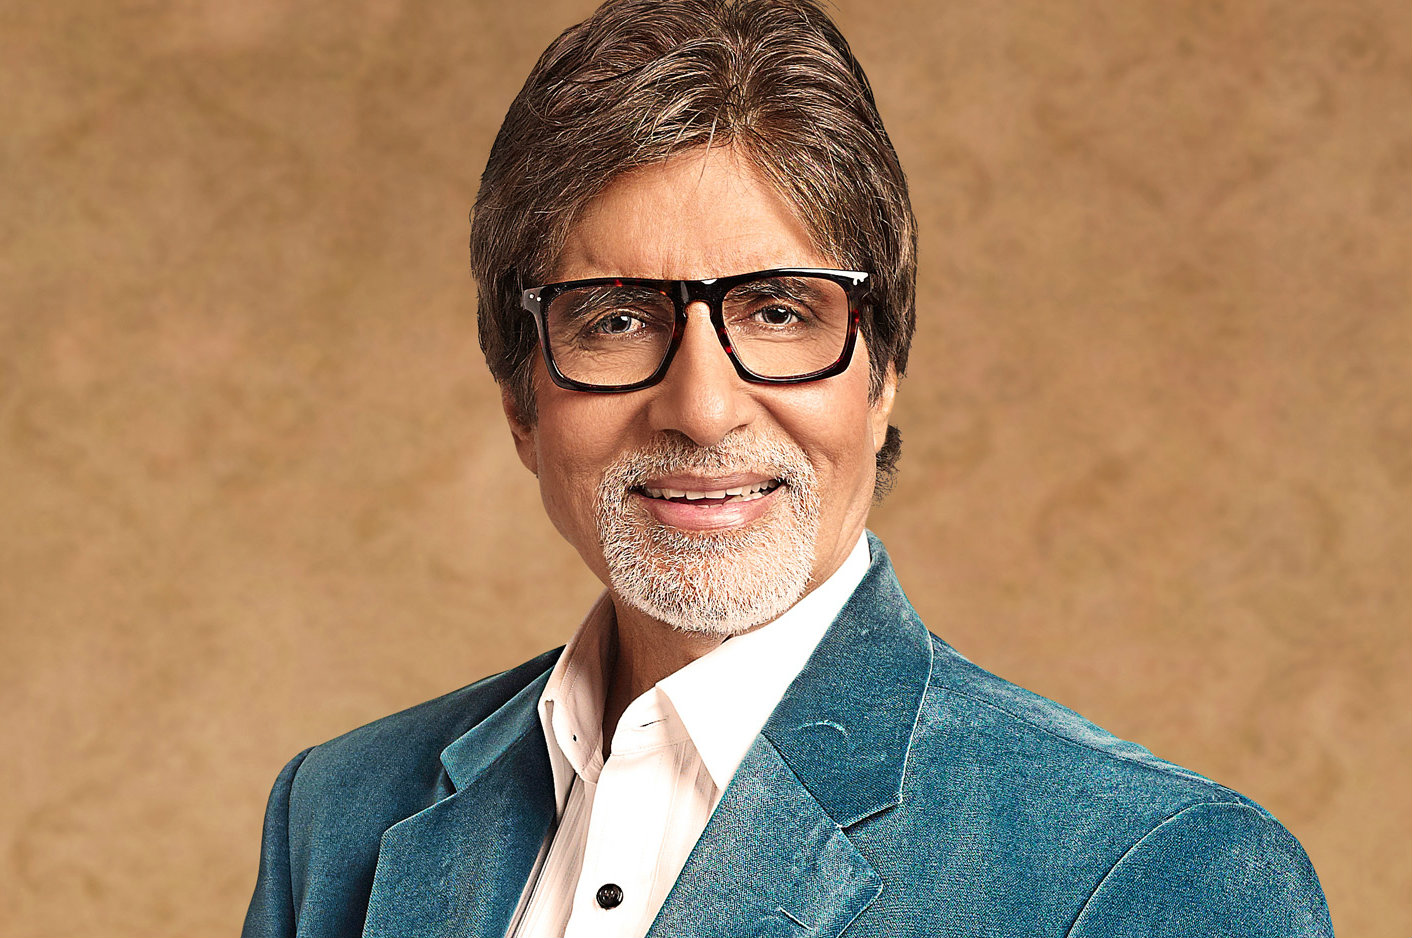 Amitabh Bachchan in awe of young talent around him